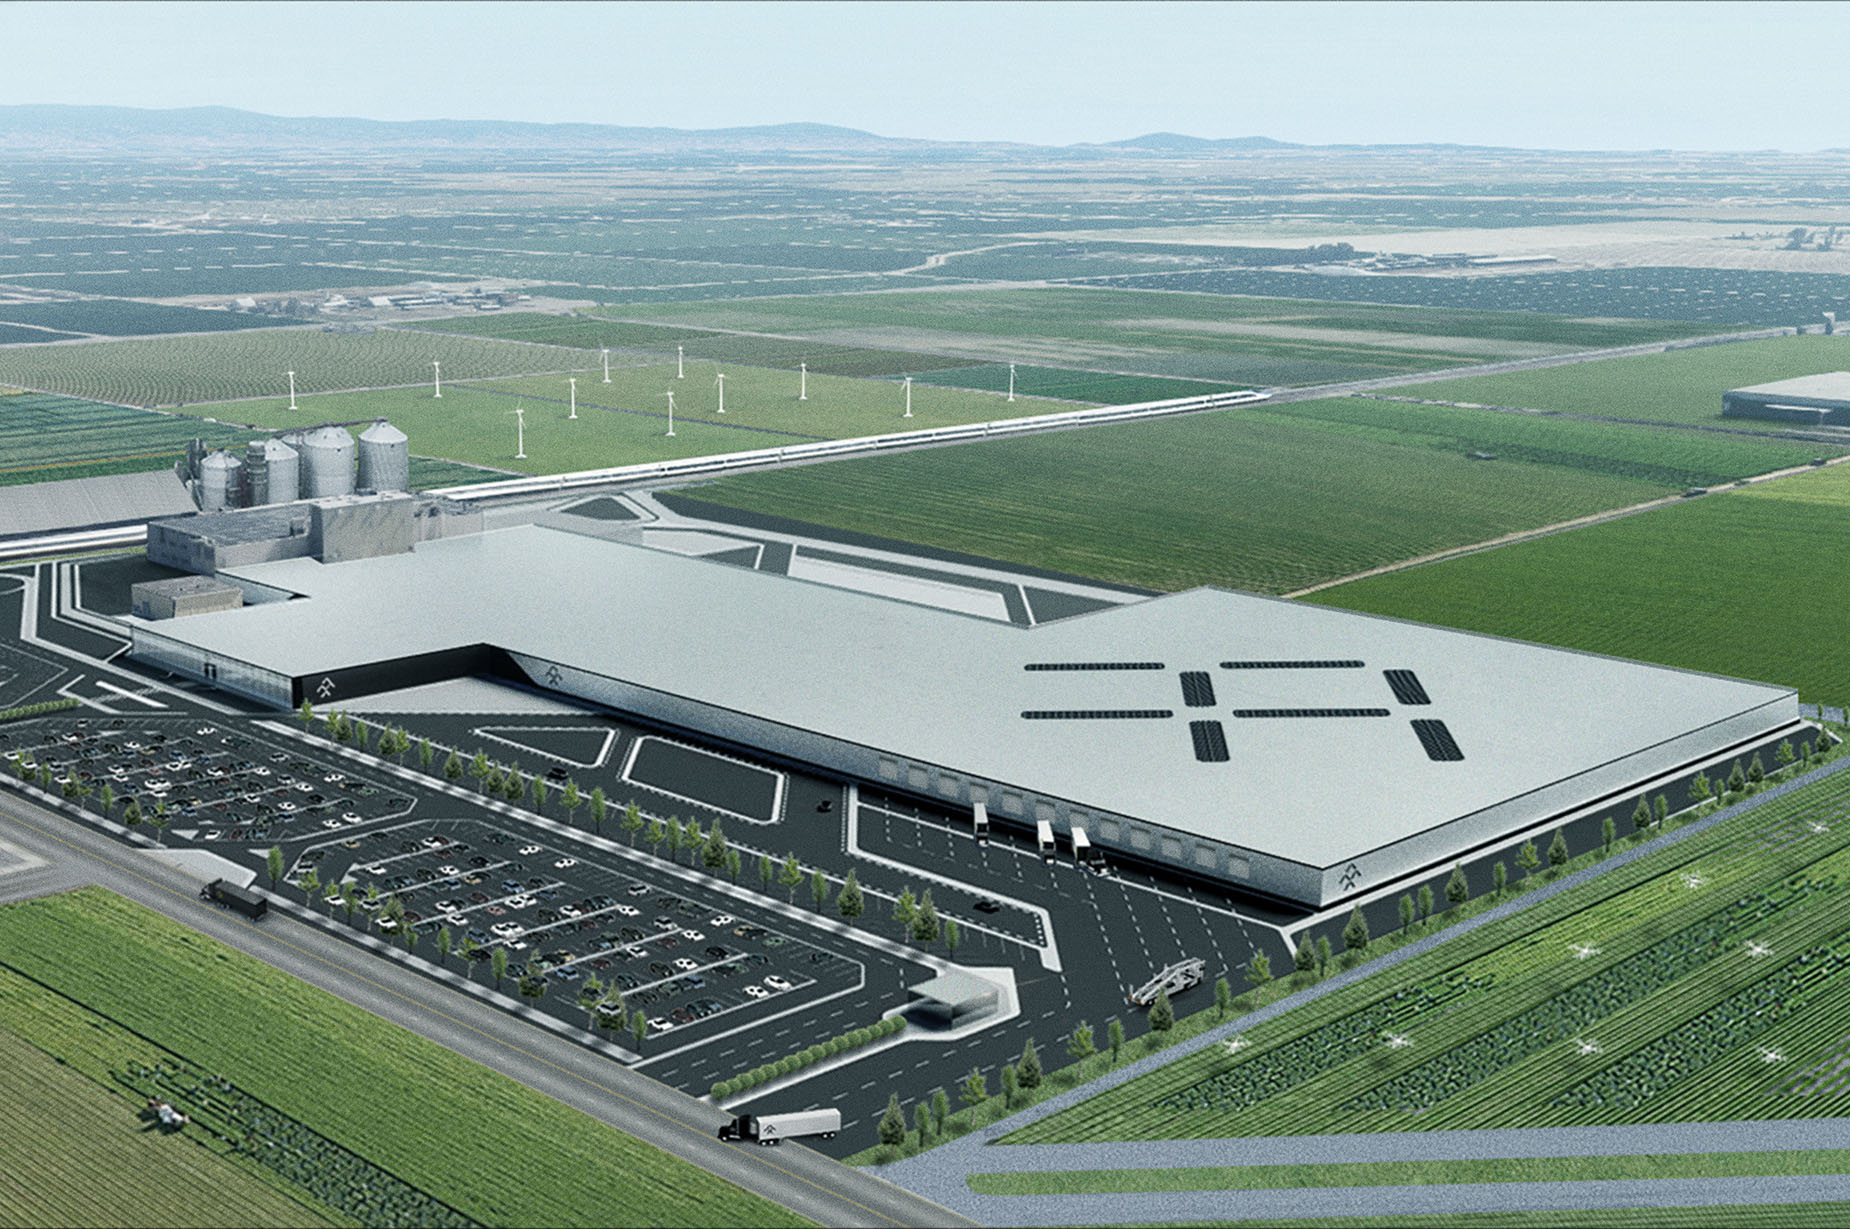 Faraday Future New Hanford Factory